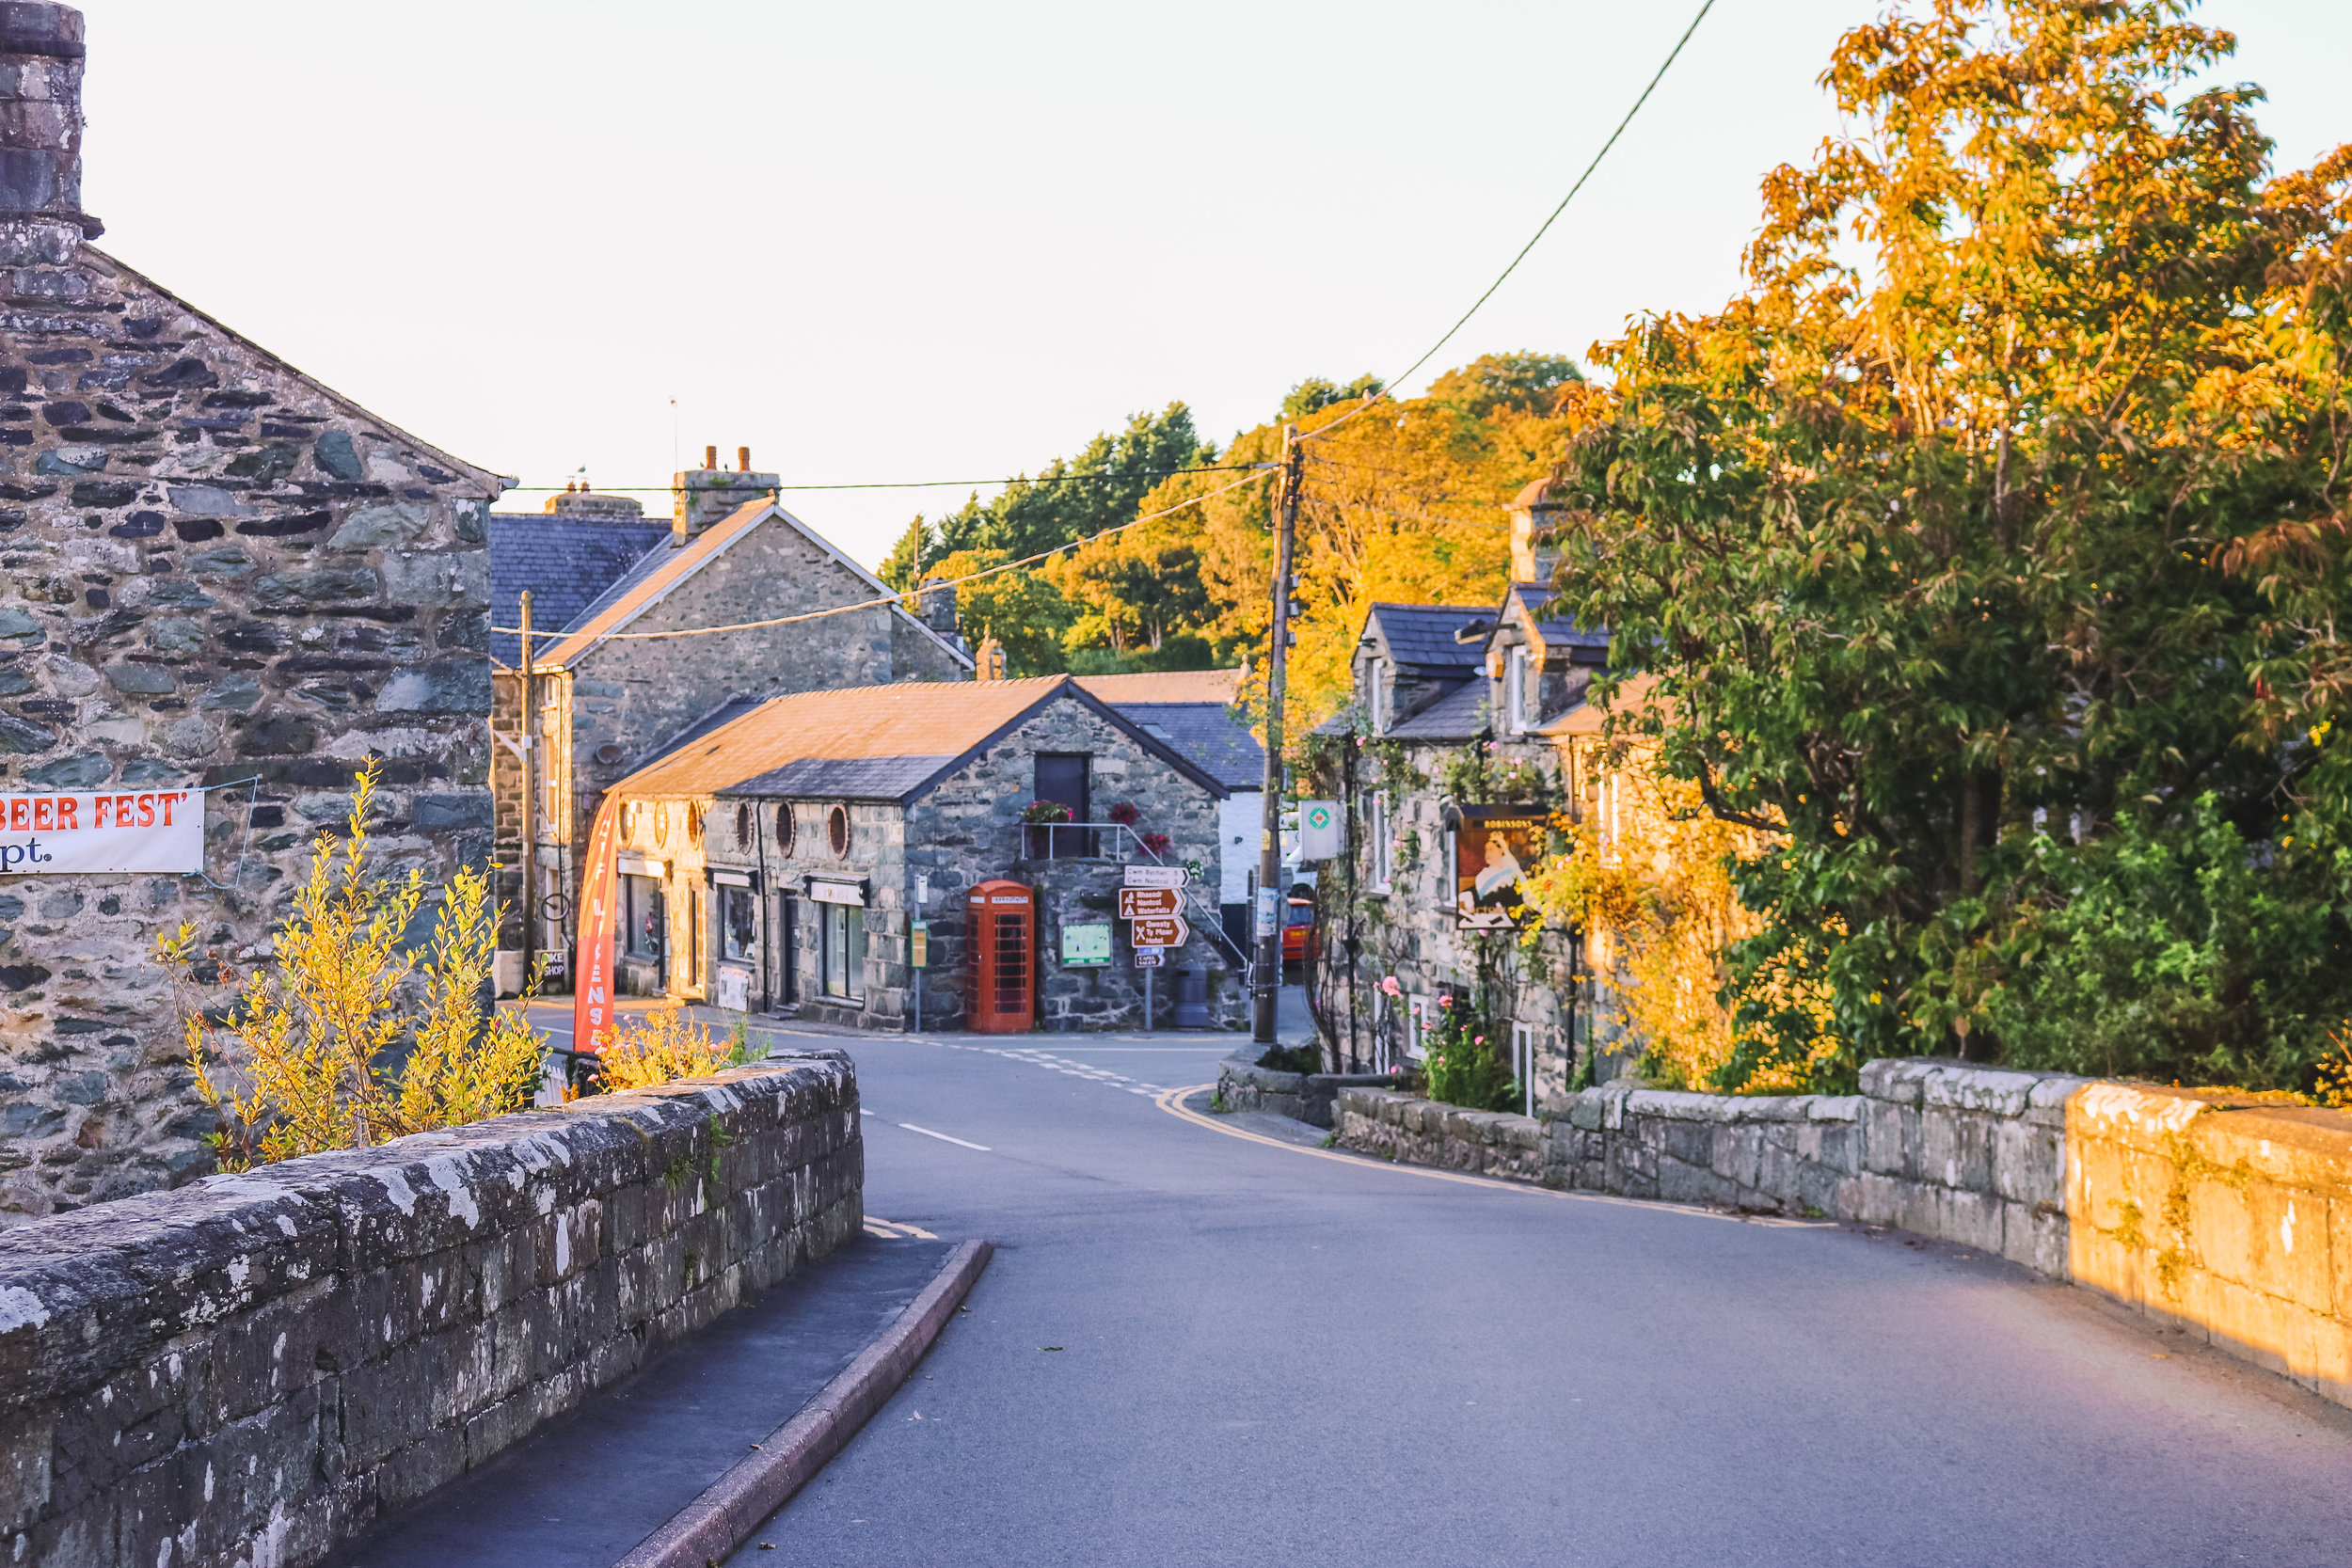 The must see places for a trip to Wales -